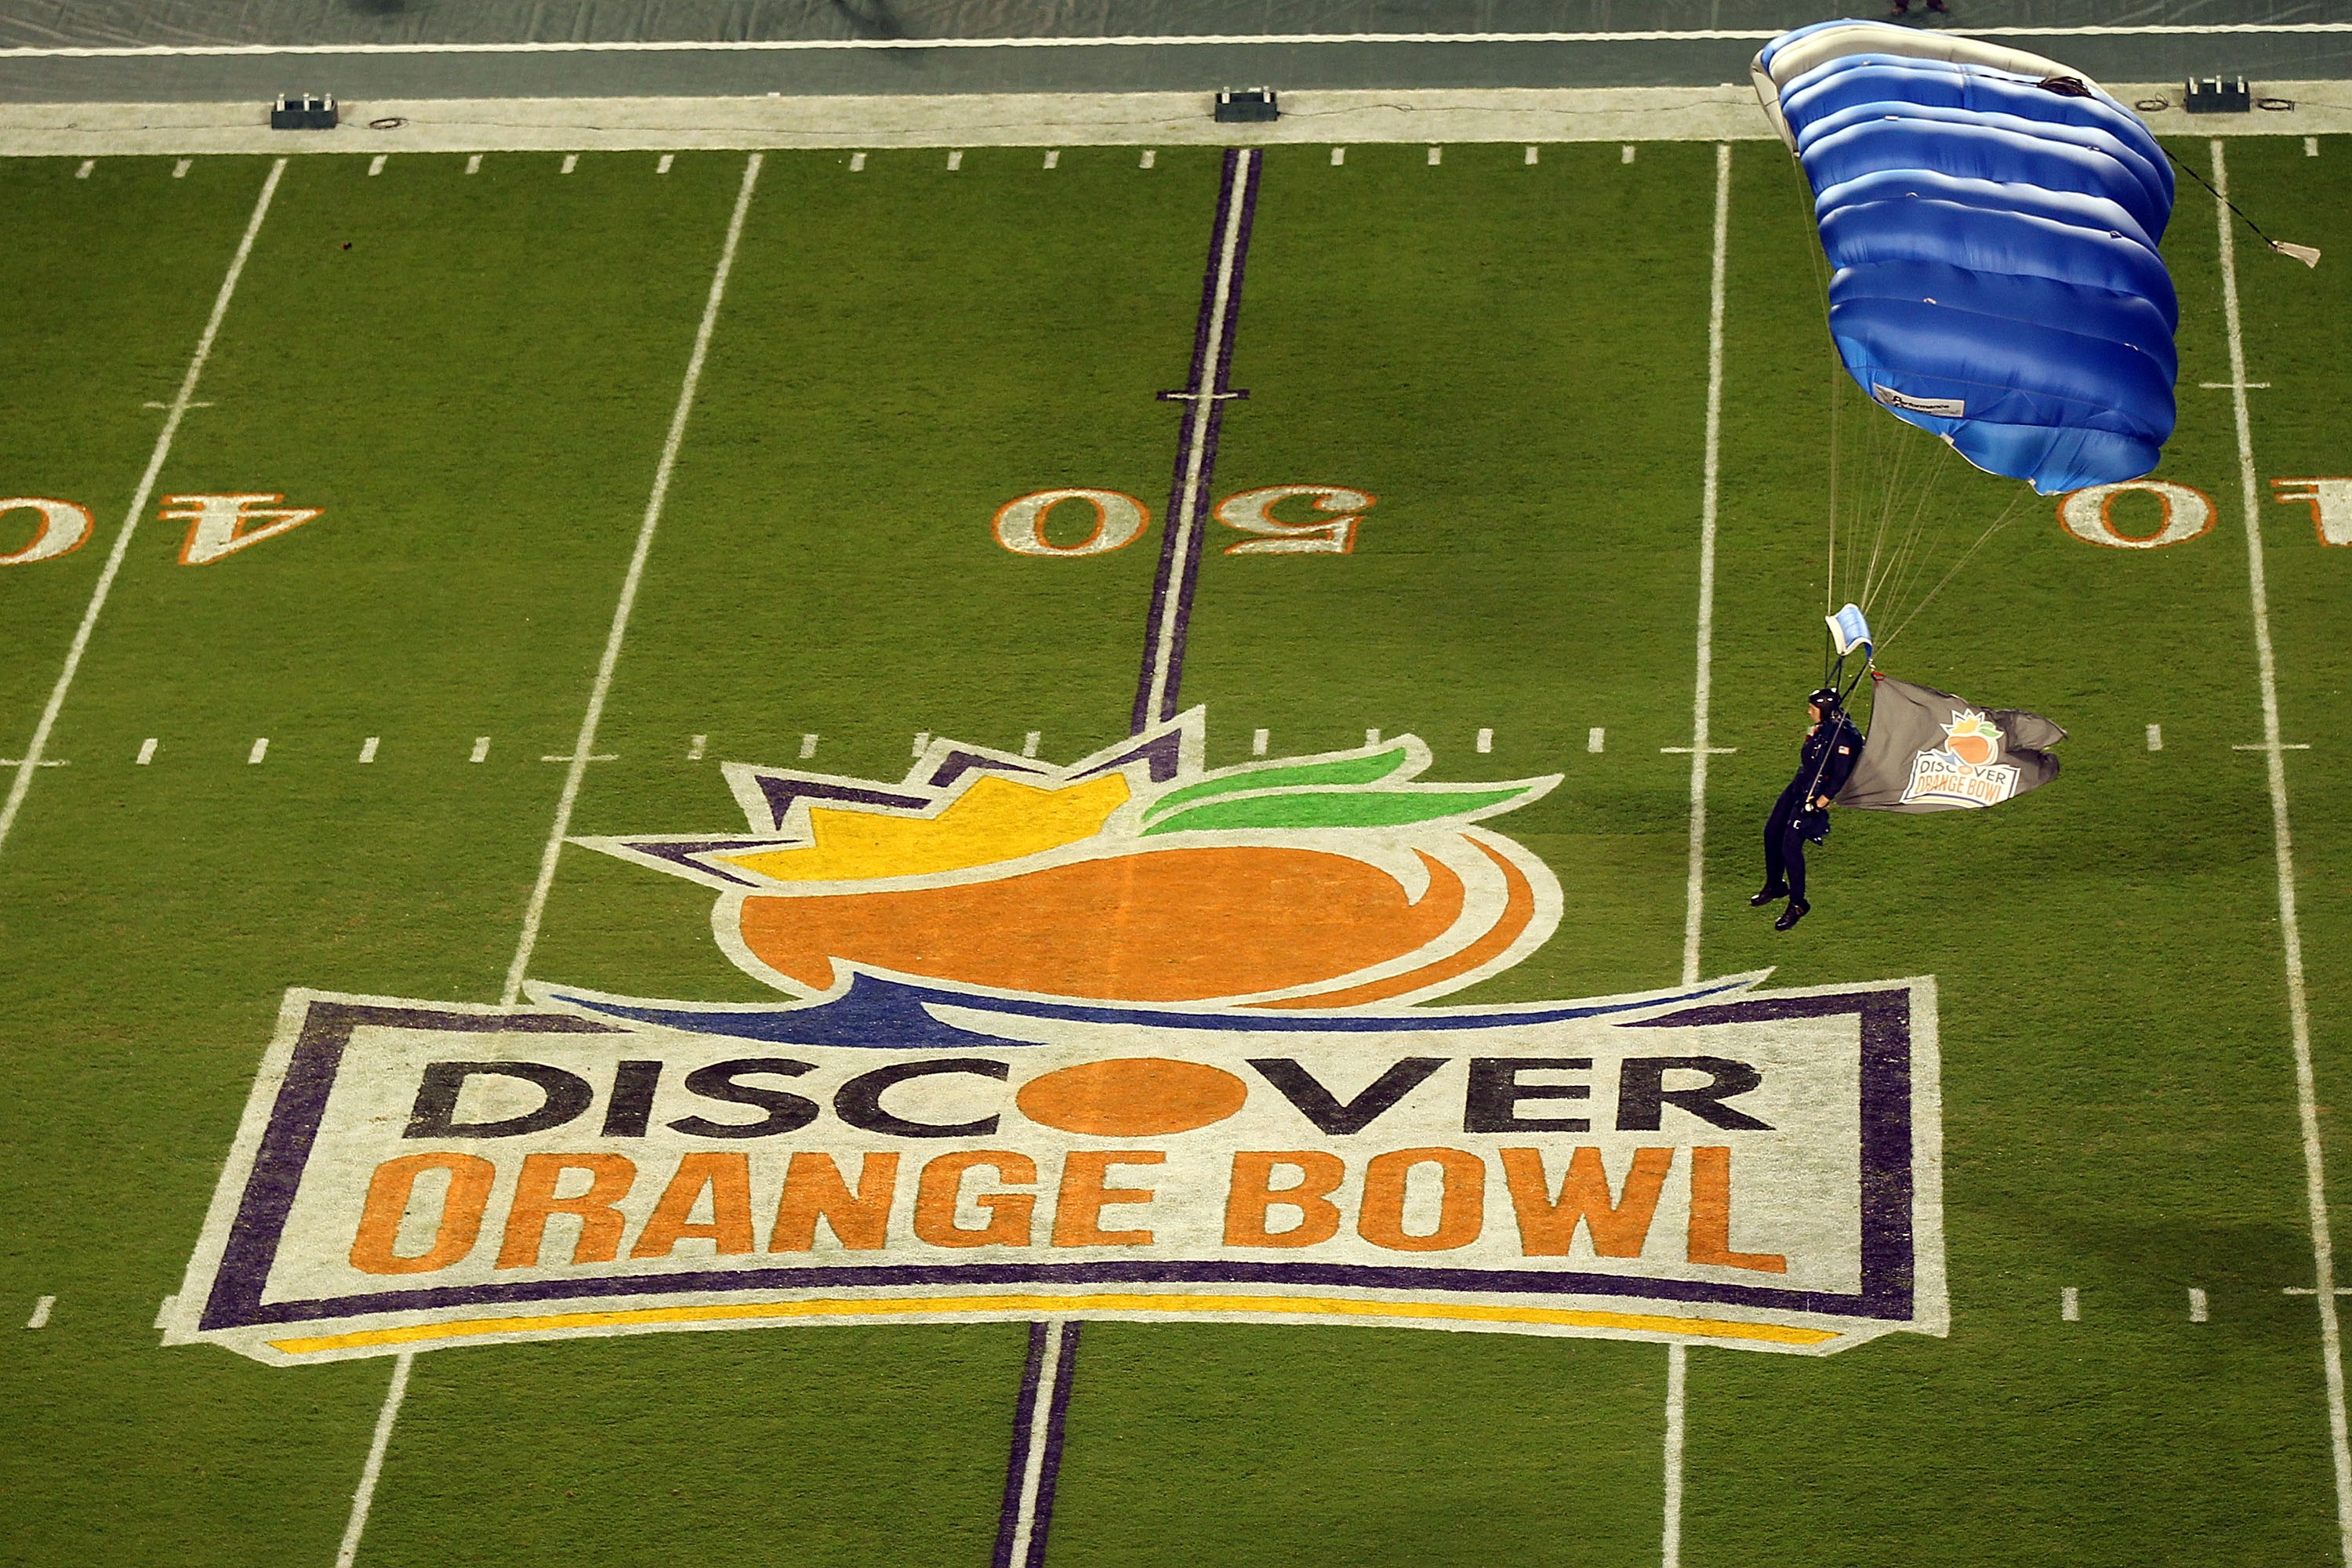 MIAMI, FL - JANUARY 03:  An aerialist parachutes onto the field prior to the Stanford Cardinal playing against the Virginia Tech Hokies during the 2011 Discover Orange Bowl at Sun Life Stadium on January 3, 2011 in Miami, Florida.  (Photo by Mike Ehrmann/